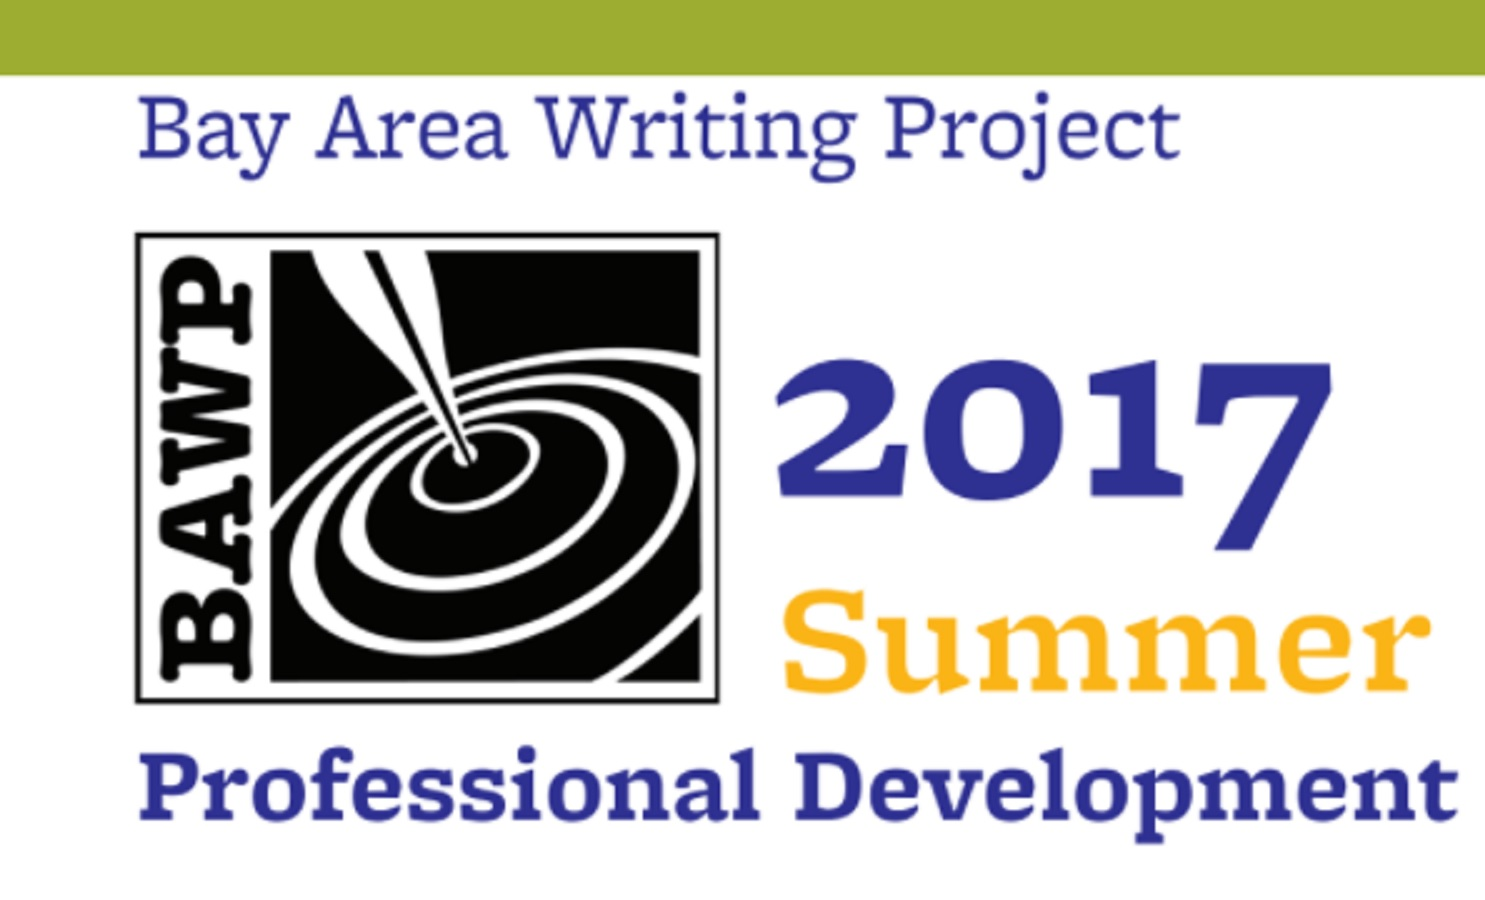 creative writing camps bay area The sjawp (san jose area writing project) is a california subject matter project, an affiliate of the national writing project and the california writing project we are a non-profit organization of, by, and for teachers dedicated to improving the teaching and uses of writing at all grade levels (k-16) and in all disciplines.